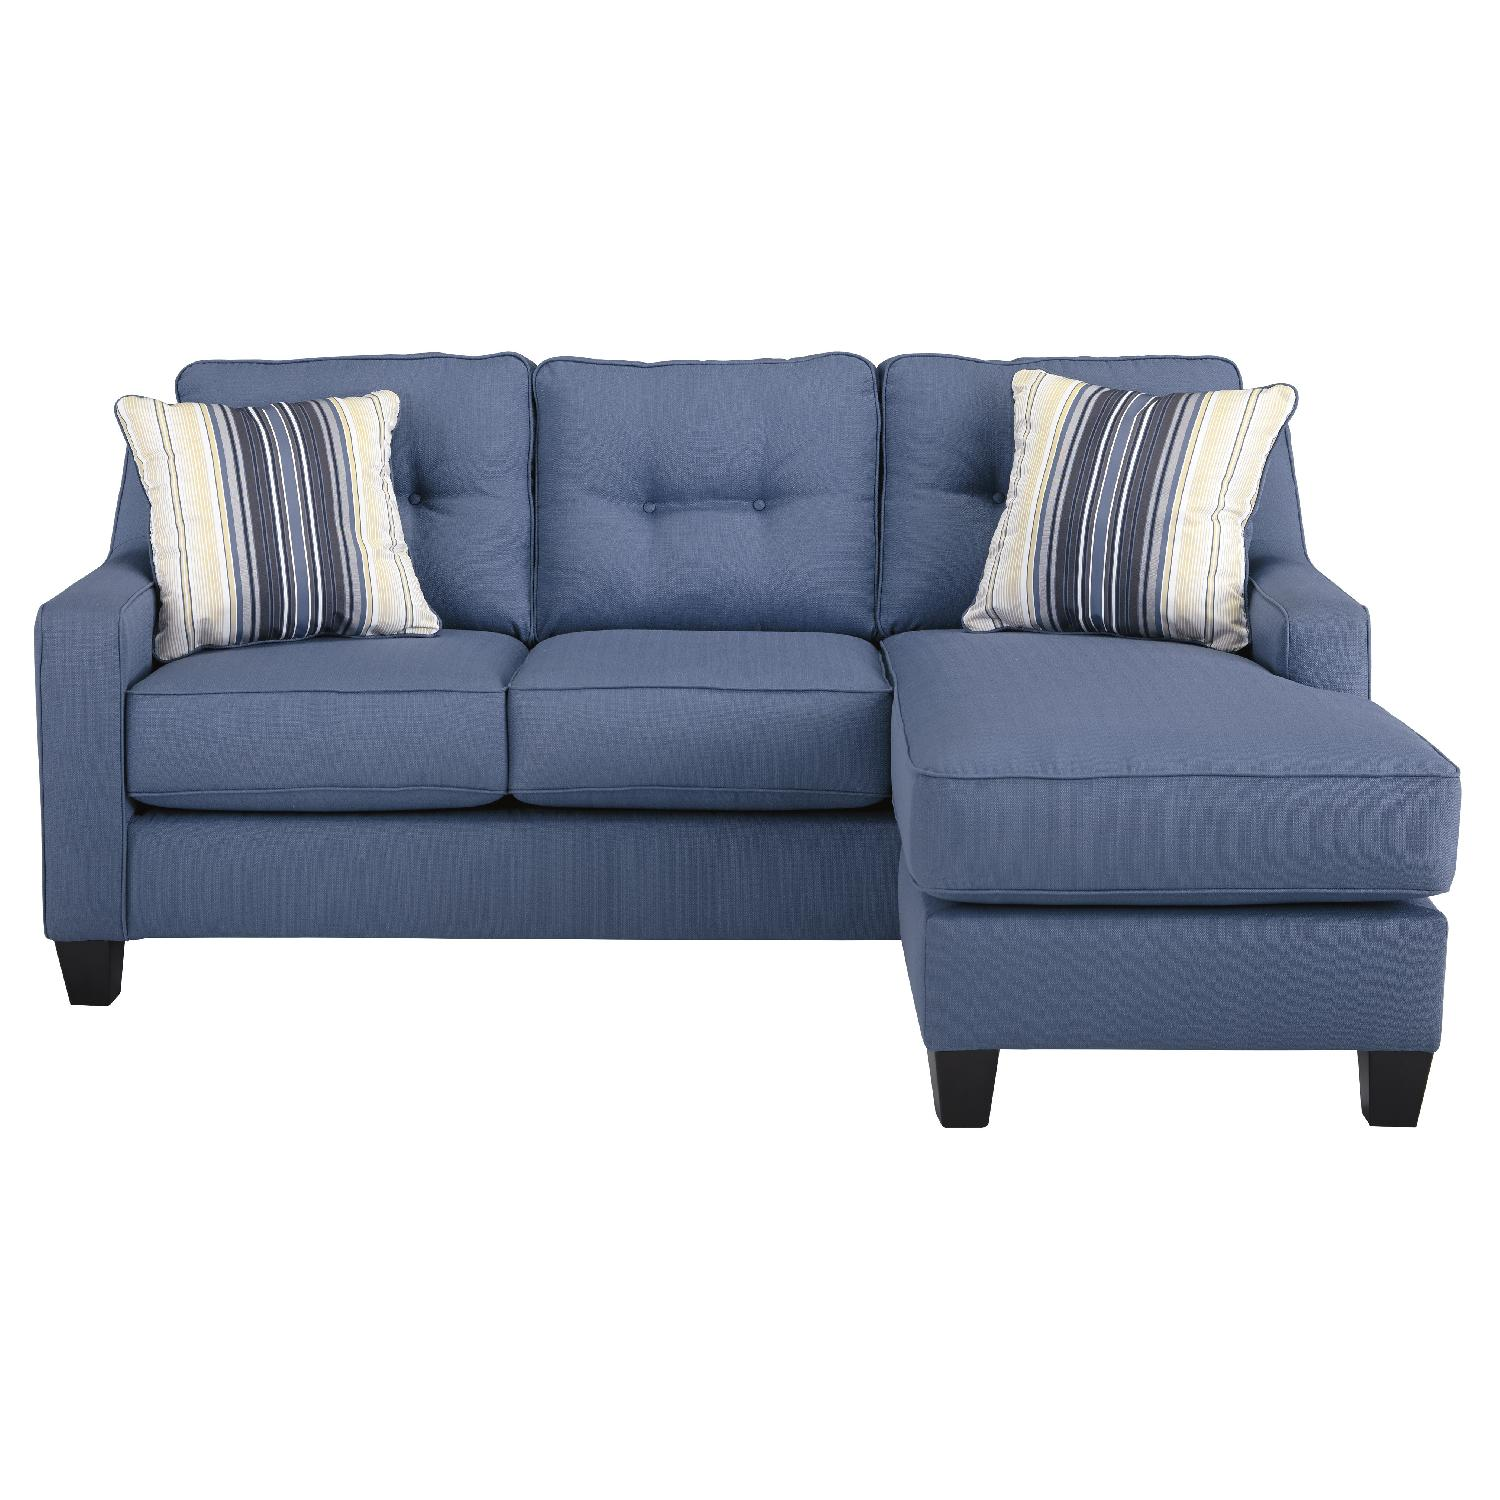 Ashley s Al Nuvella Contemporary Sectional Sofa w AptDeco